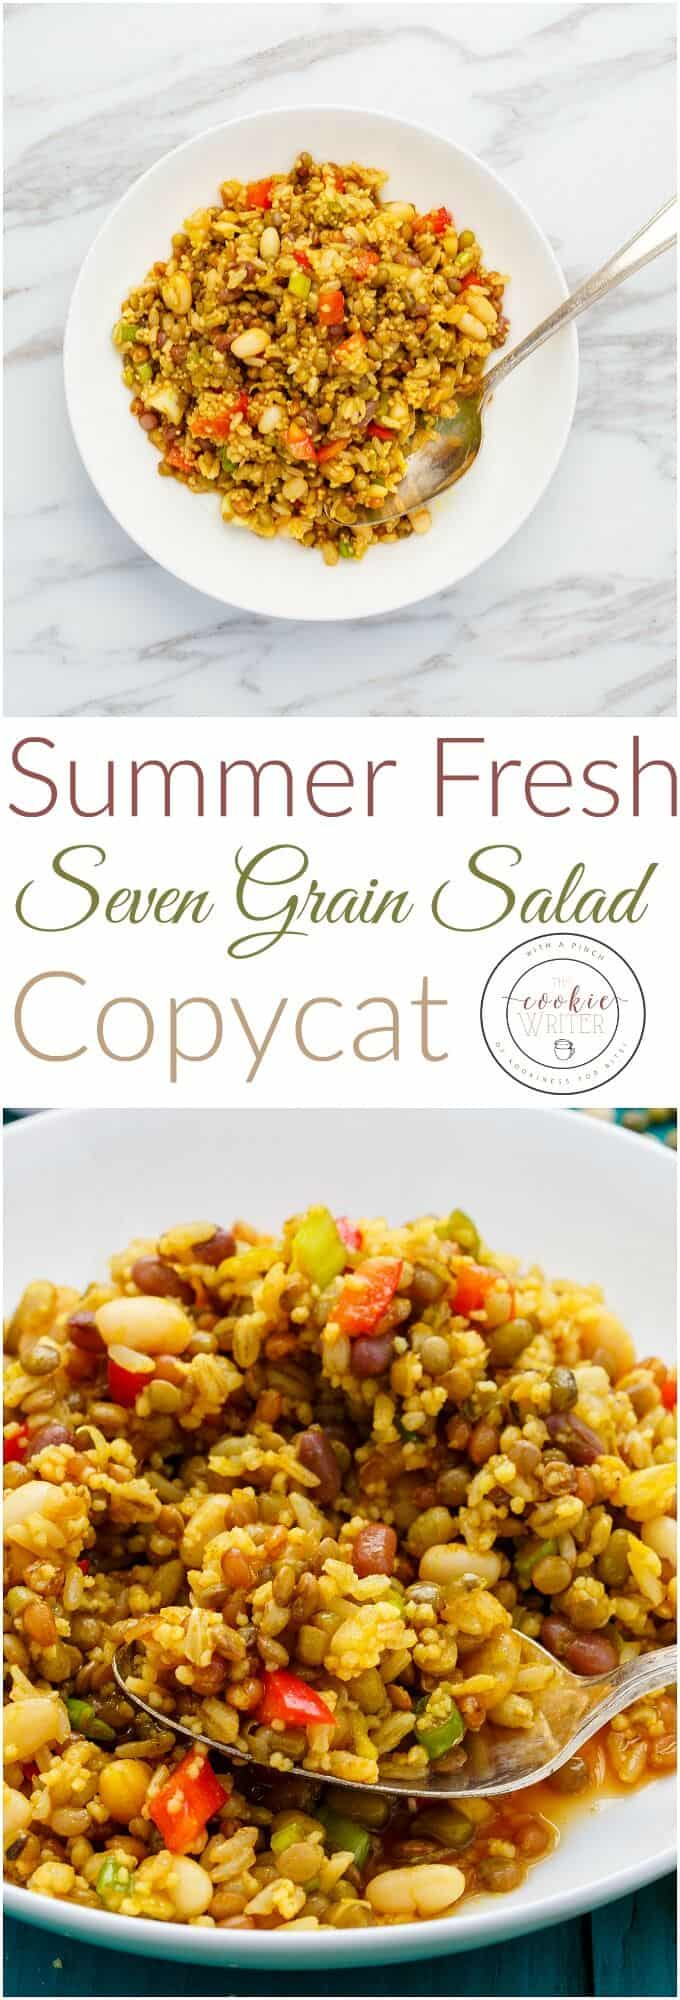 Summer Fresh Seven Grain Salad Copycat